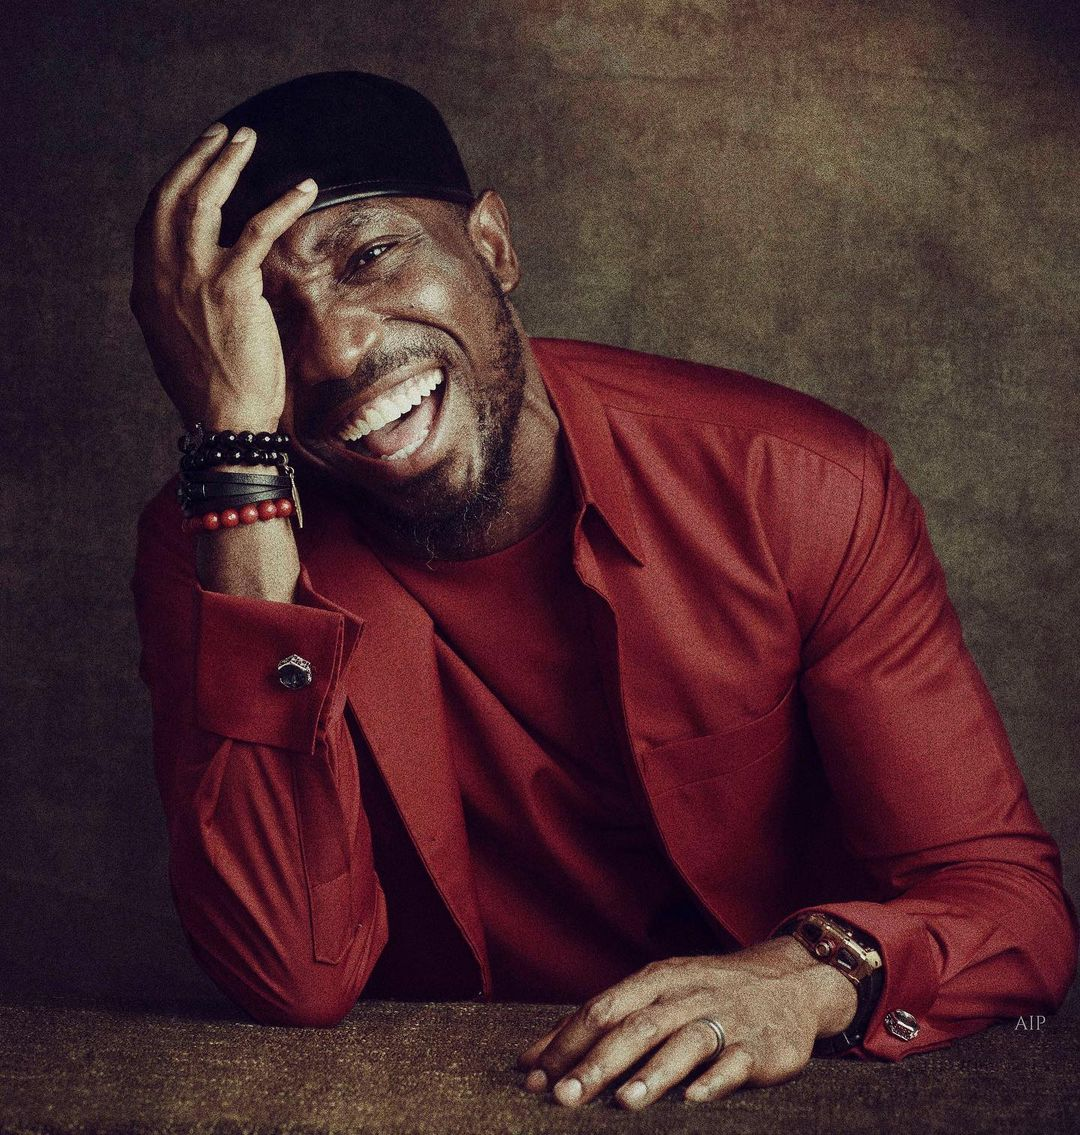 Timi Dakolo Reminisces About His Growing Up Days As He Turns 40